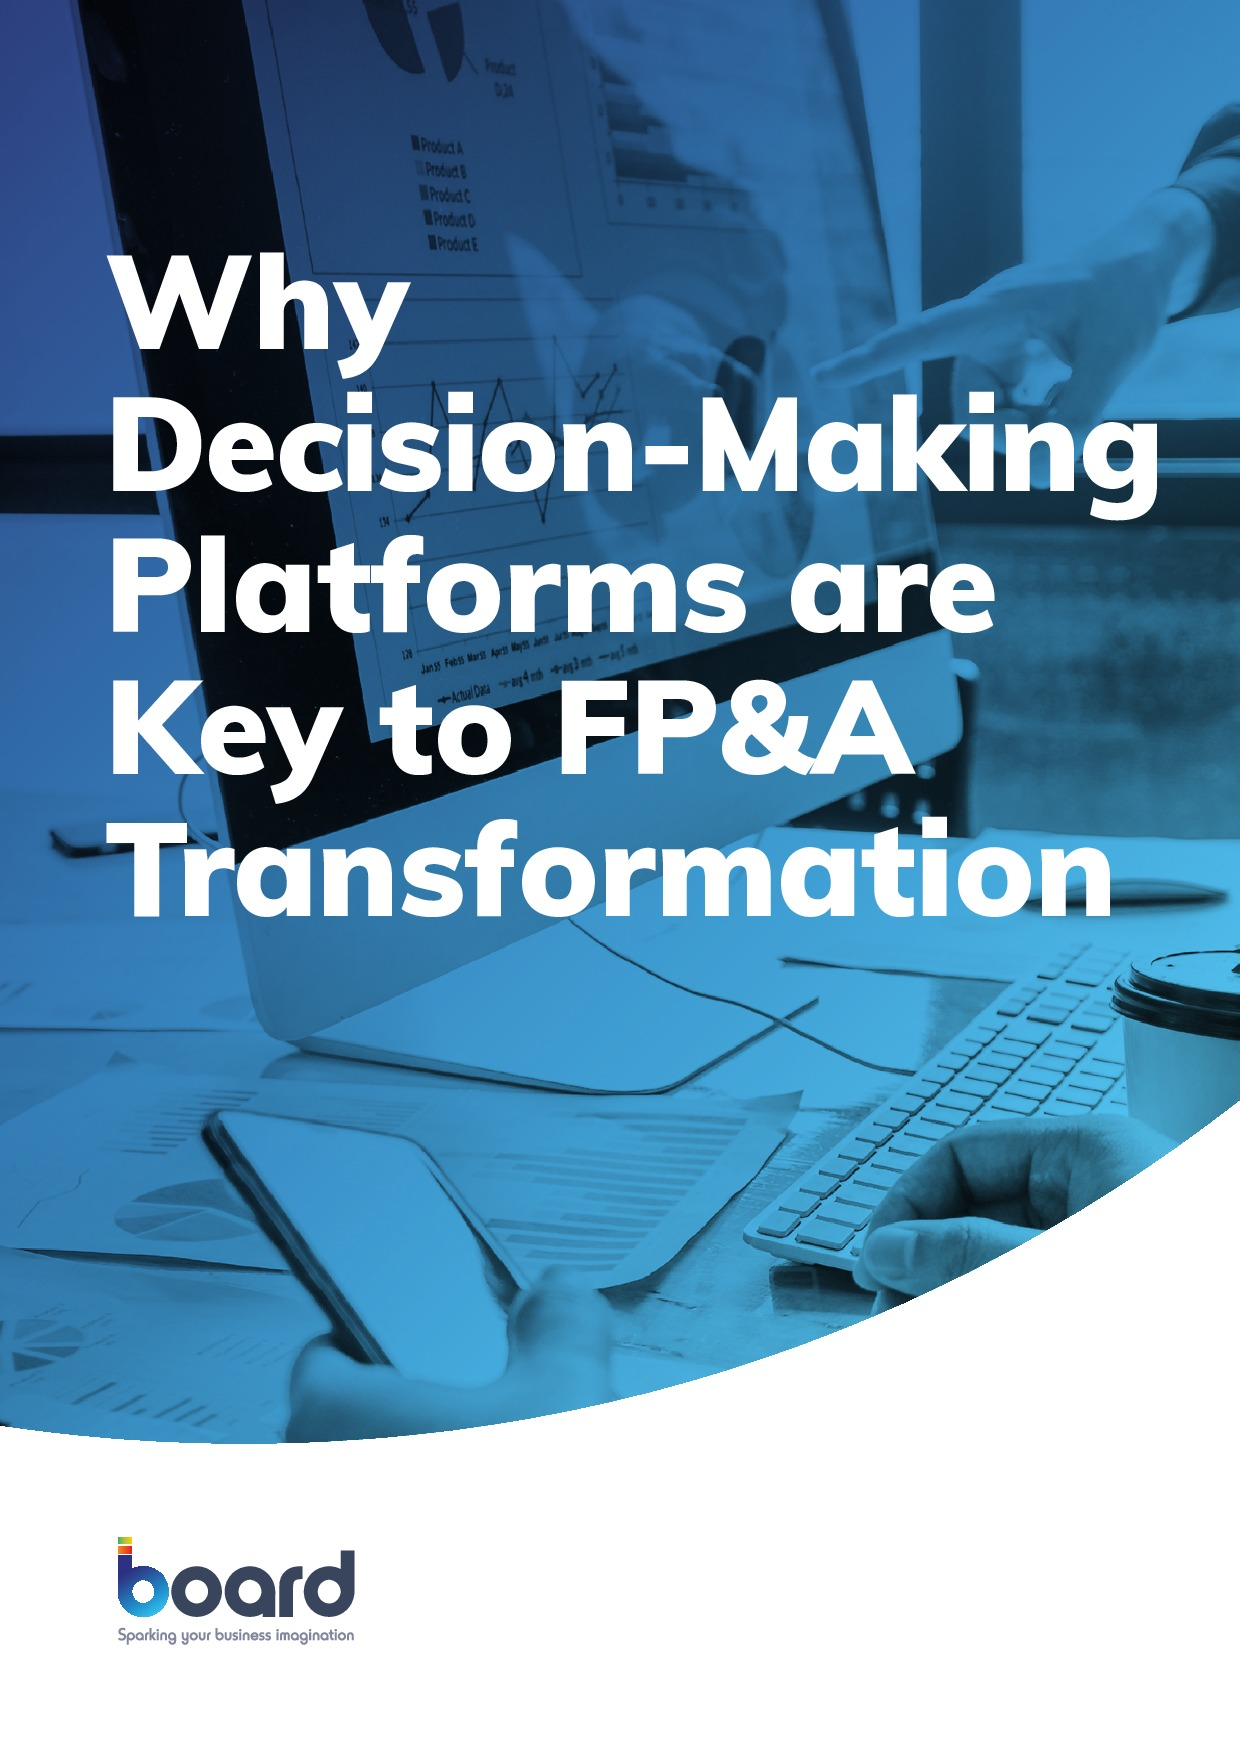 Why Decision-Making Platforms are Key to FP&A Transformation | Page 1